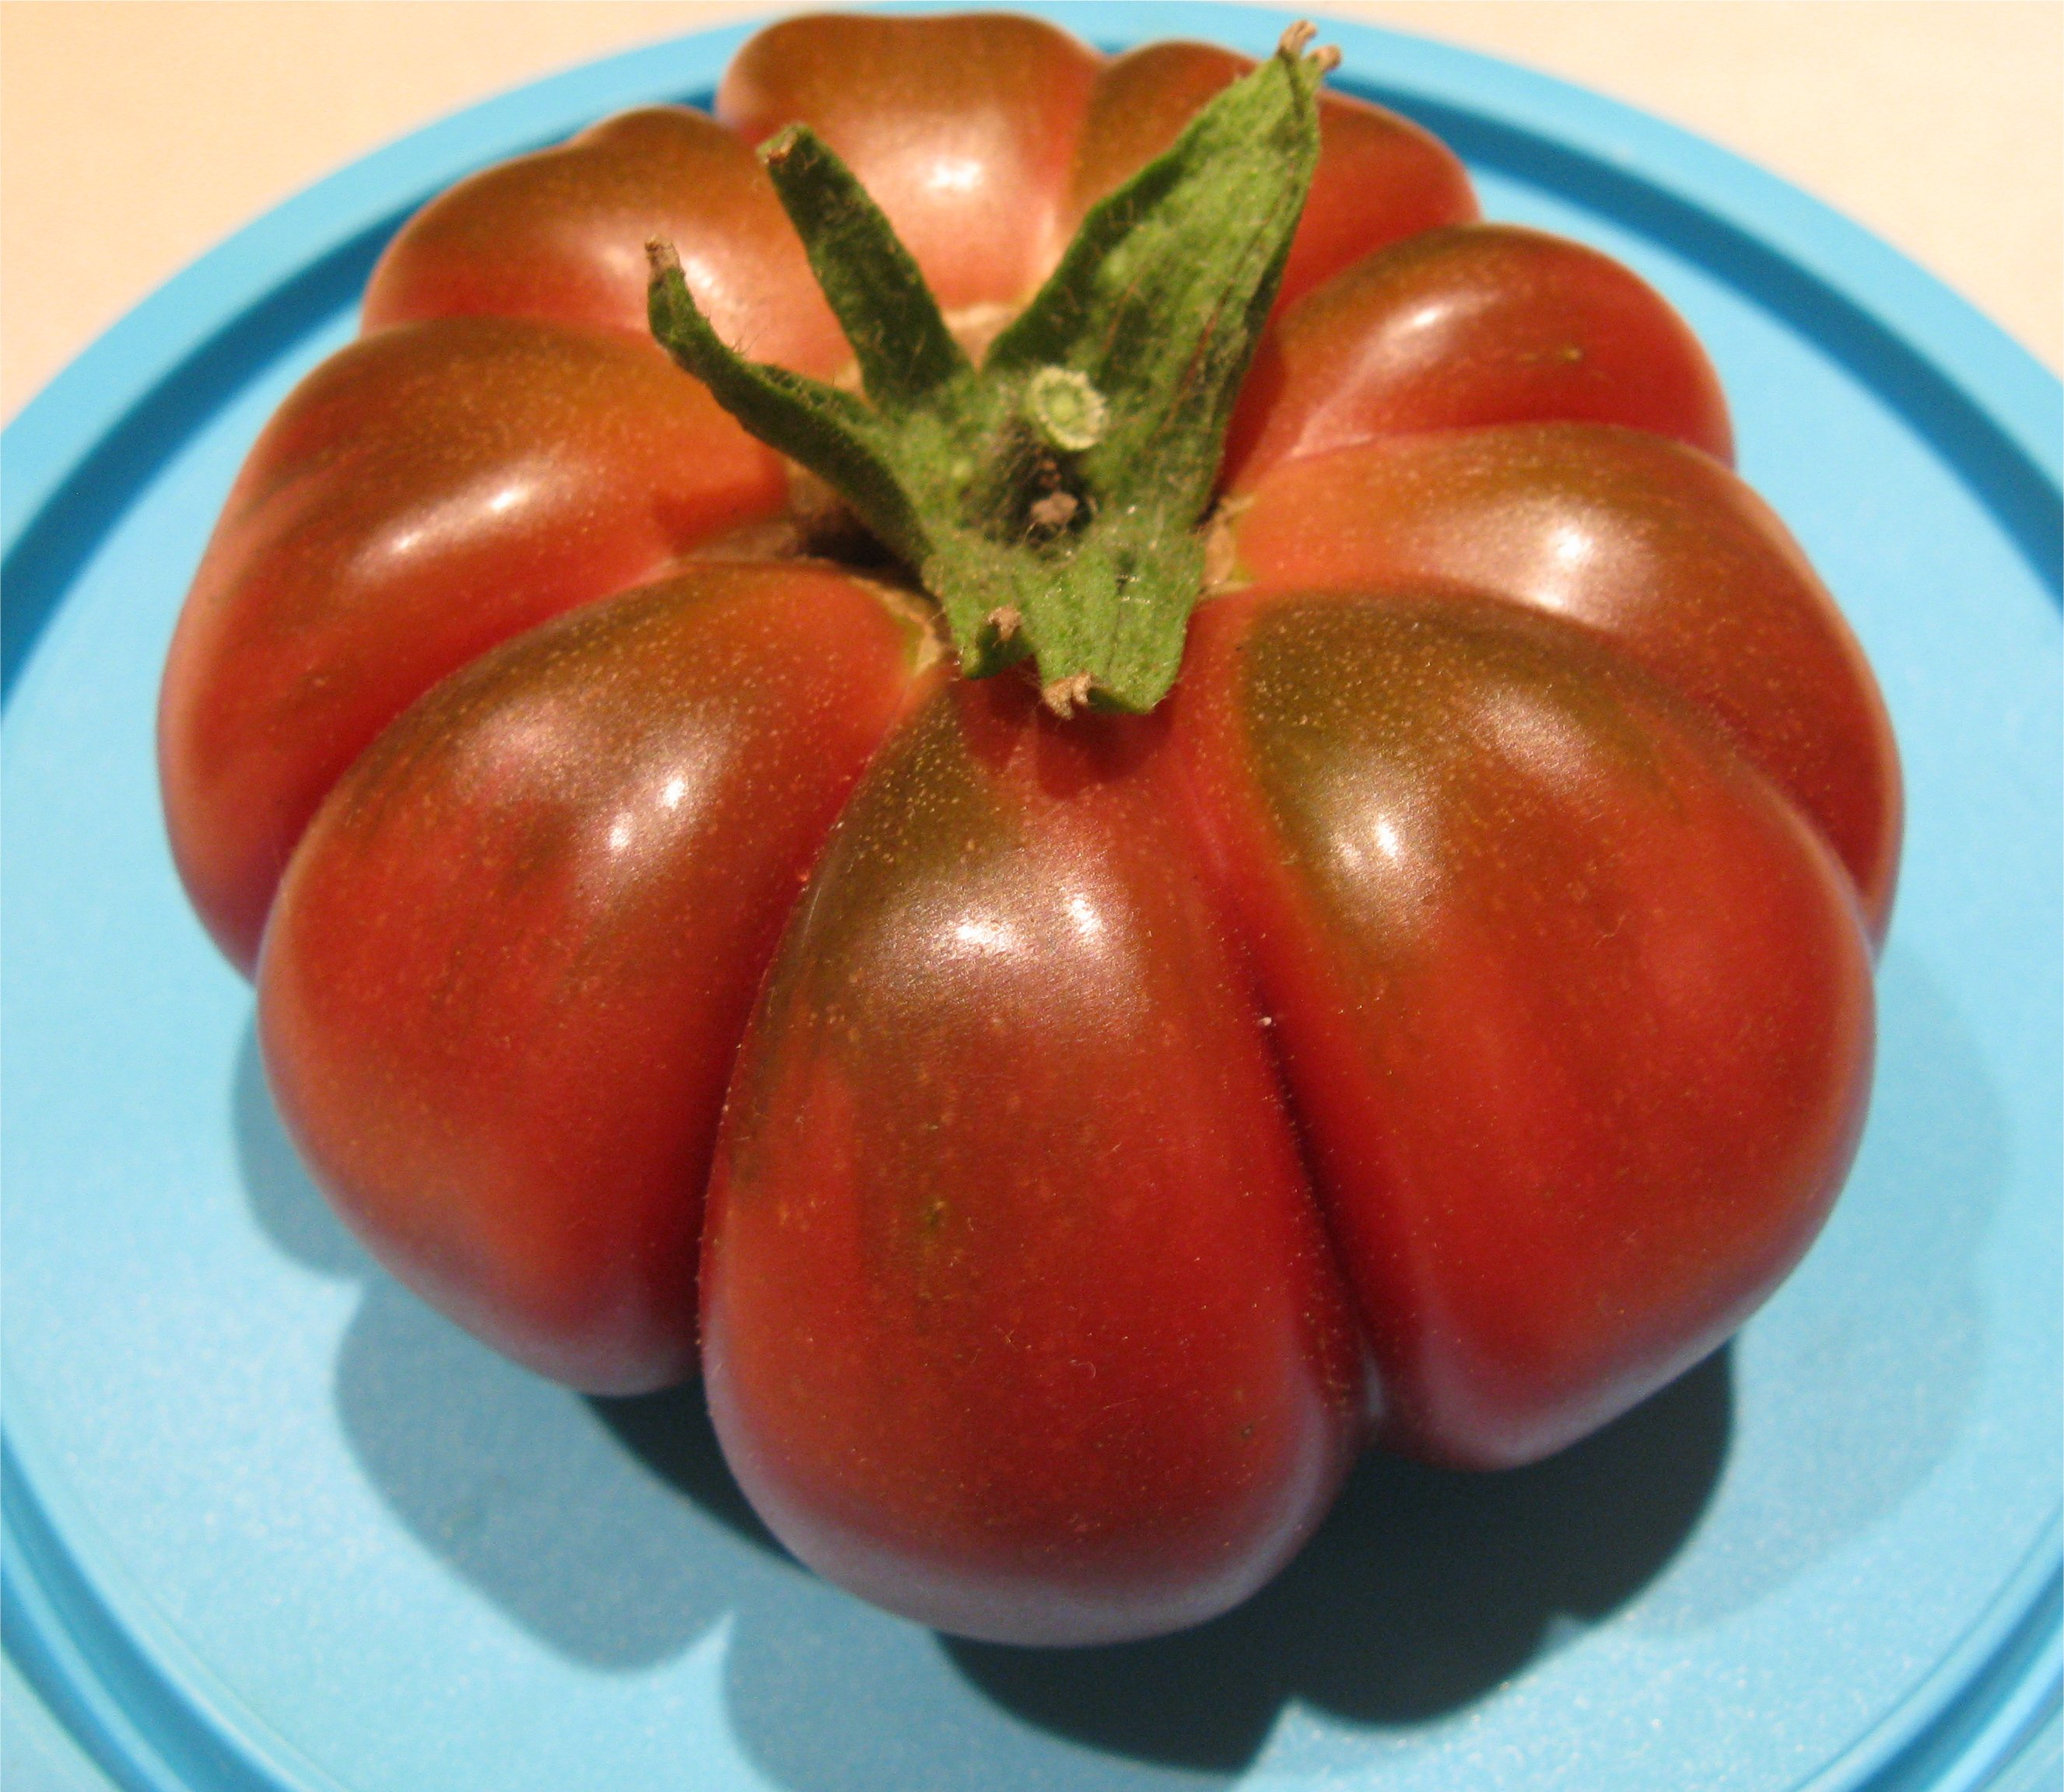 Black Tomatoes Of an h...